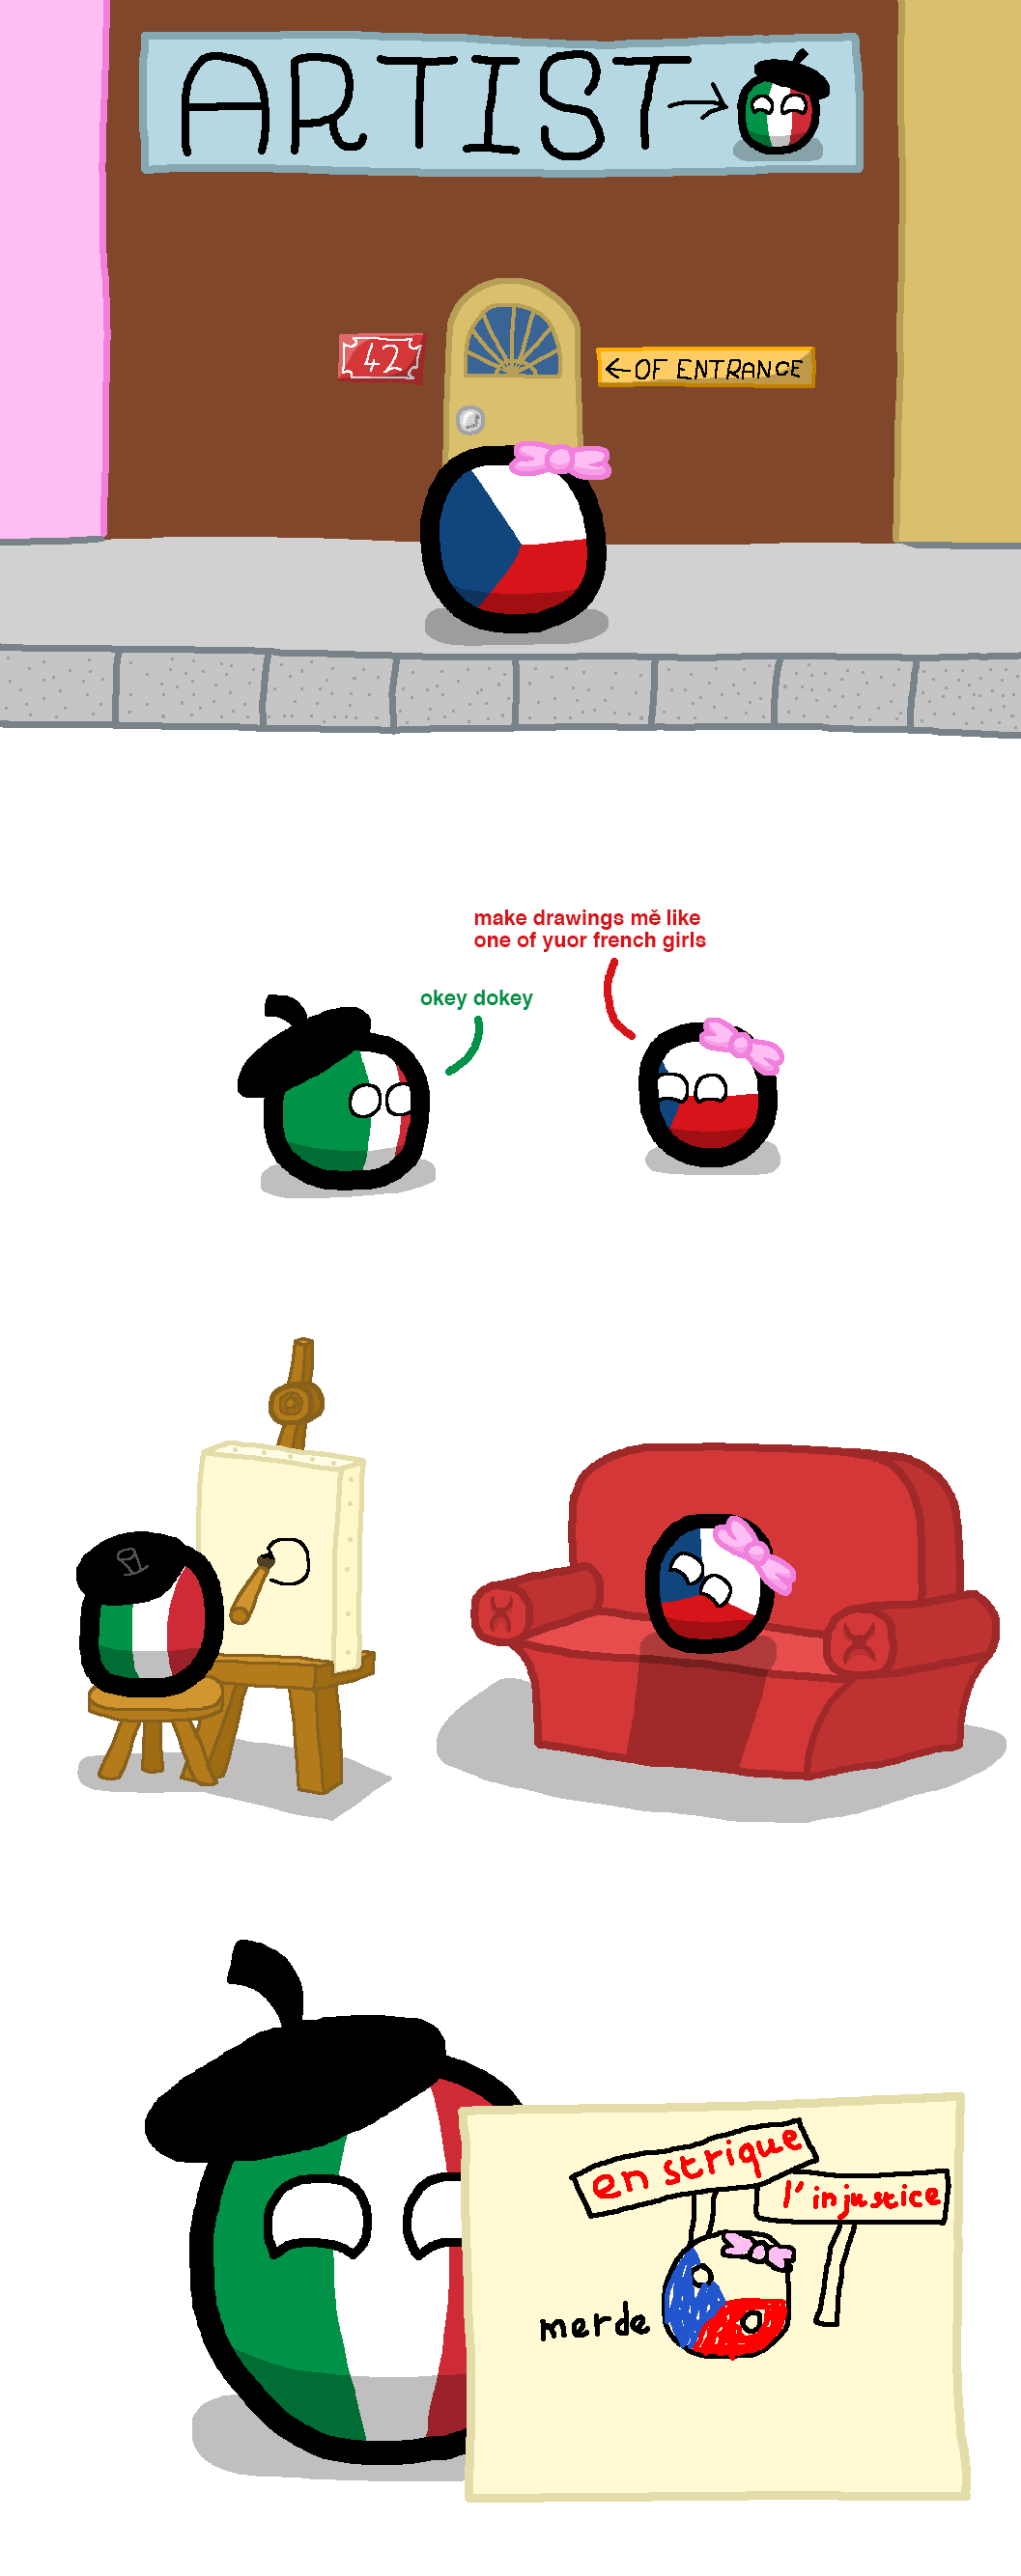 Pin By Wengwah Joshua On Countryballs - Pinterest - Funny